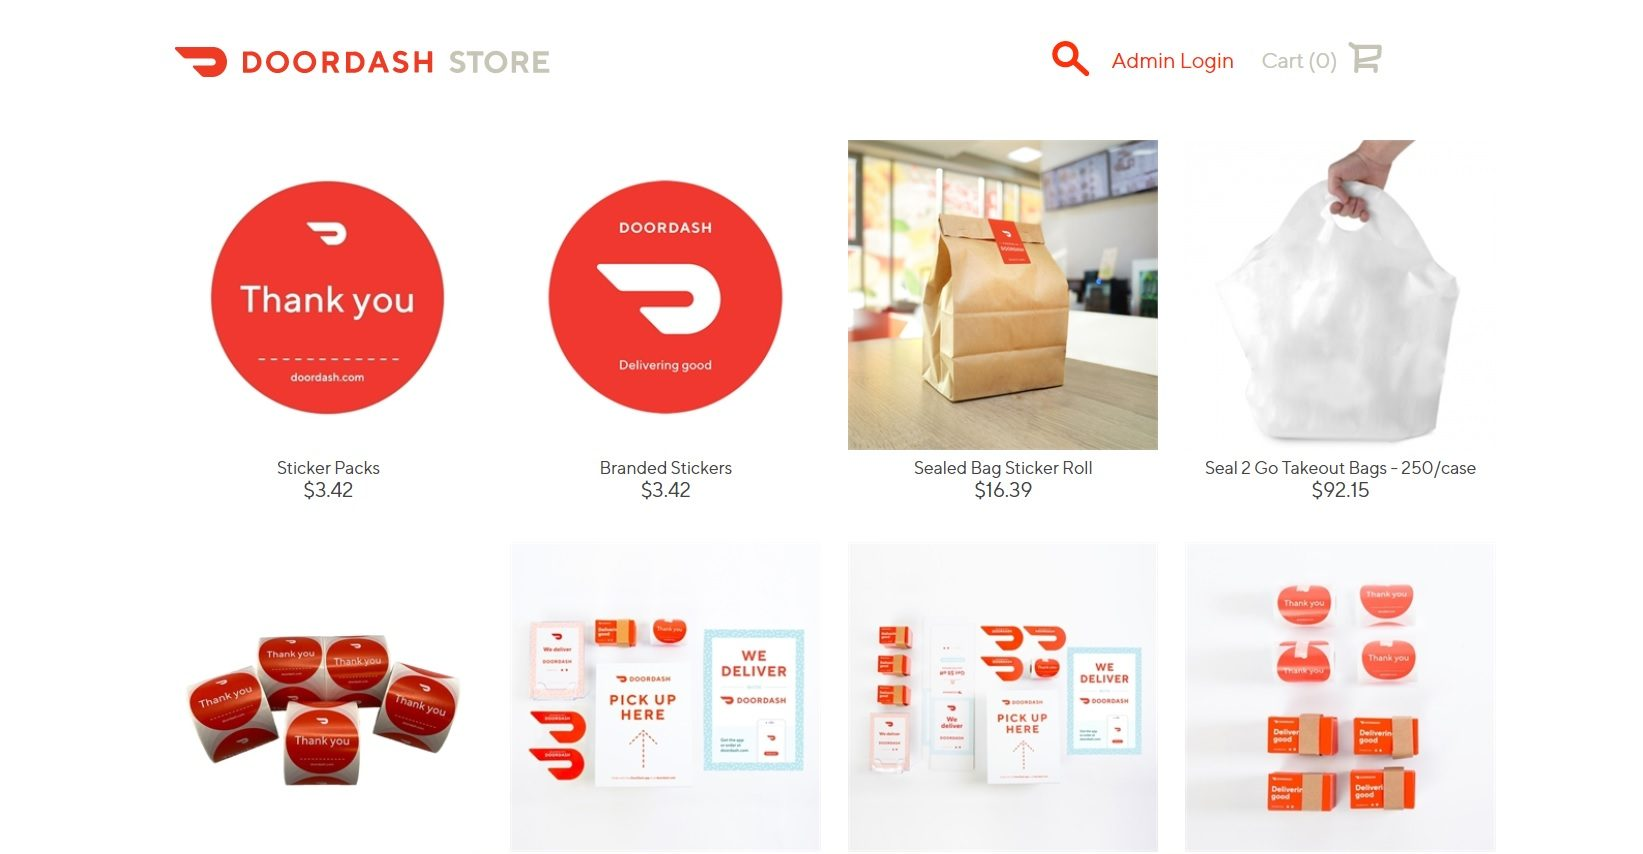 DoorDash offers in-store marketing materials